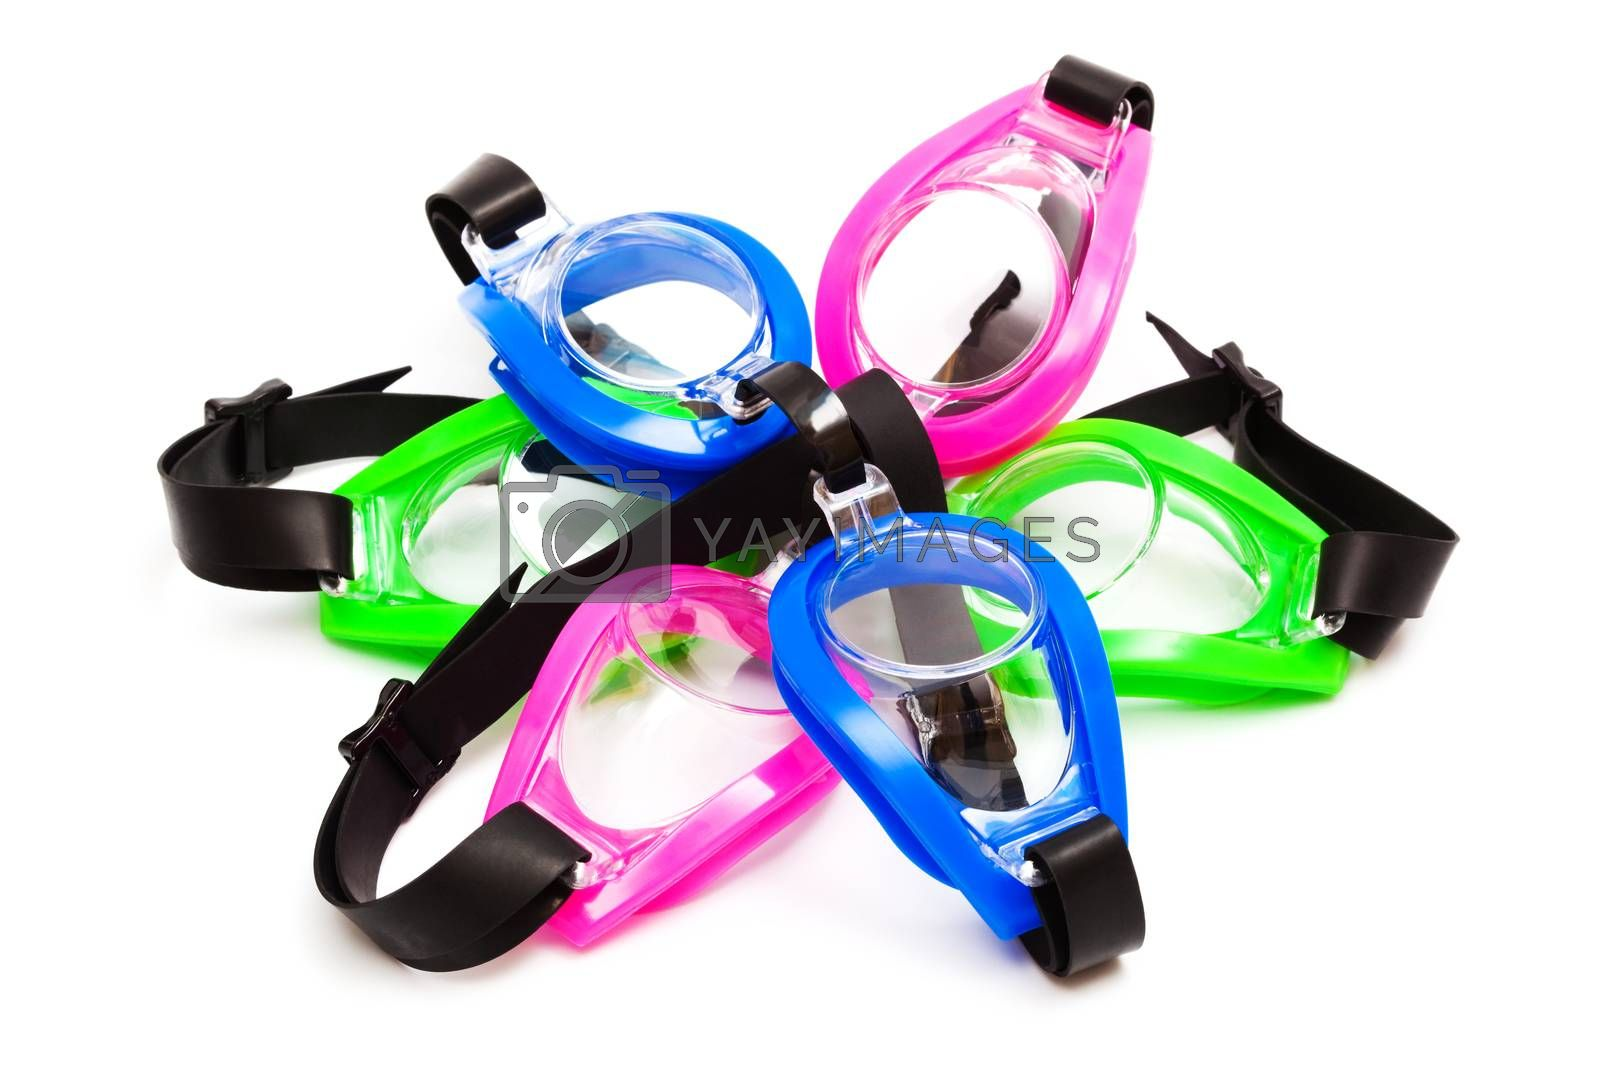 Royalty free image of goggles for swimming by terex